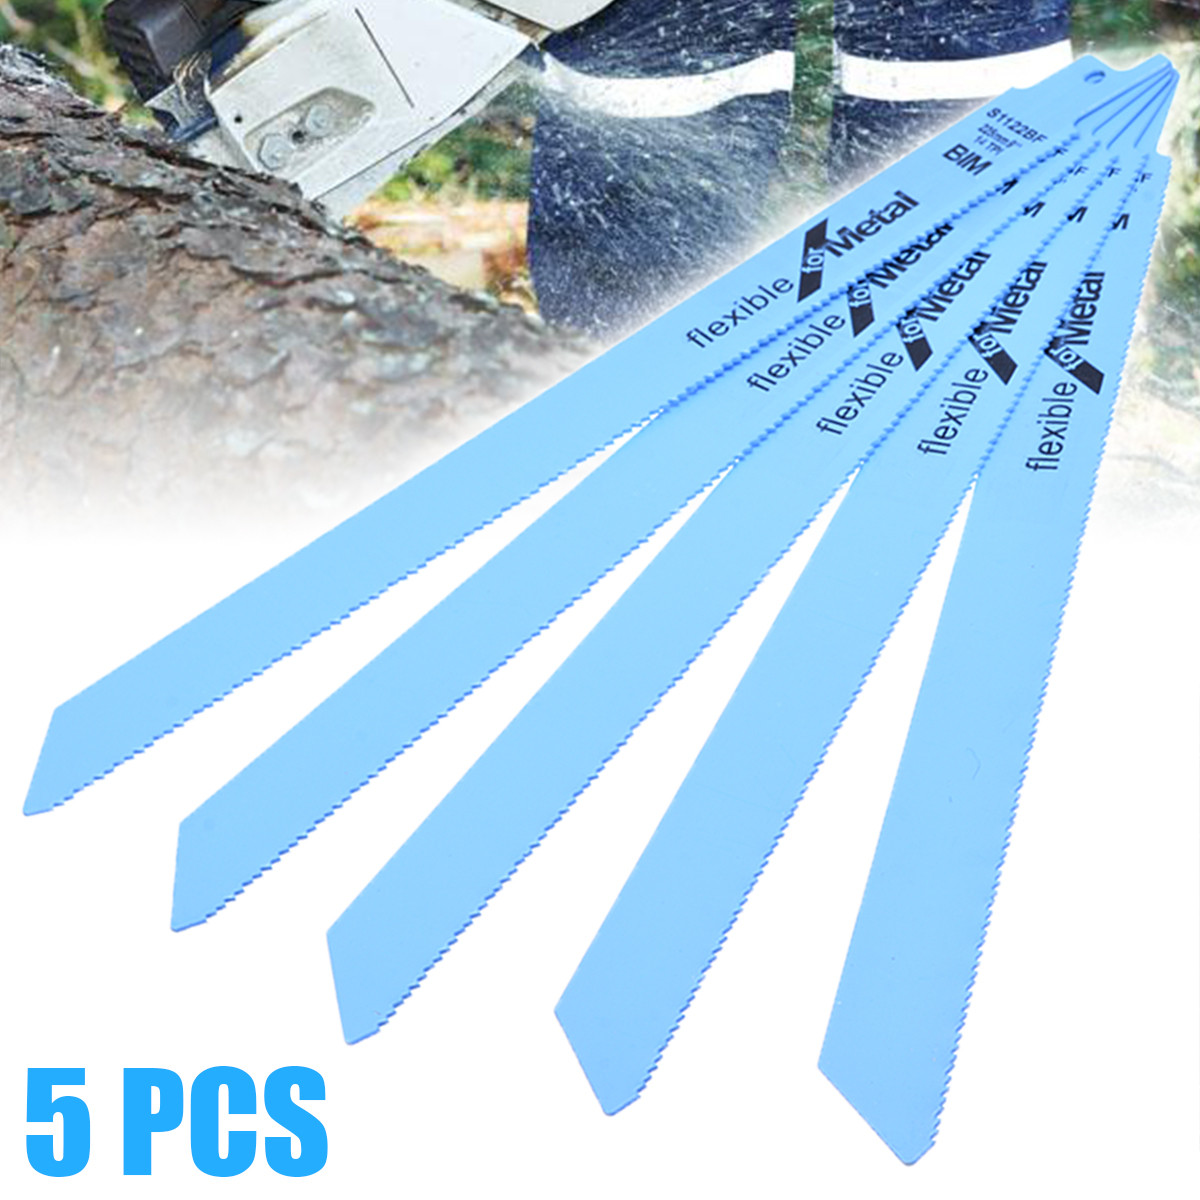 New 5pcs 18 Tpi Recip Saw Blades 225 X19mm Flexible Saw Blades Quality Durable Metal Saw Blades Replacement For Fast Cutting